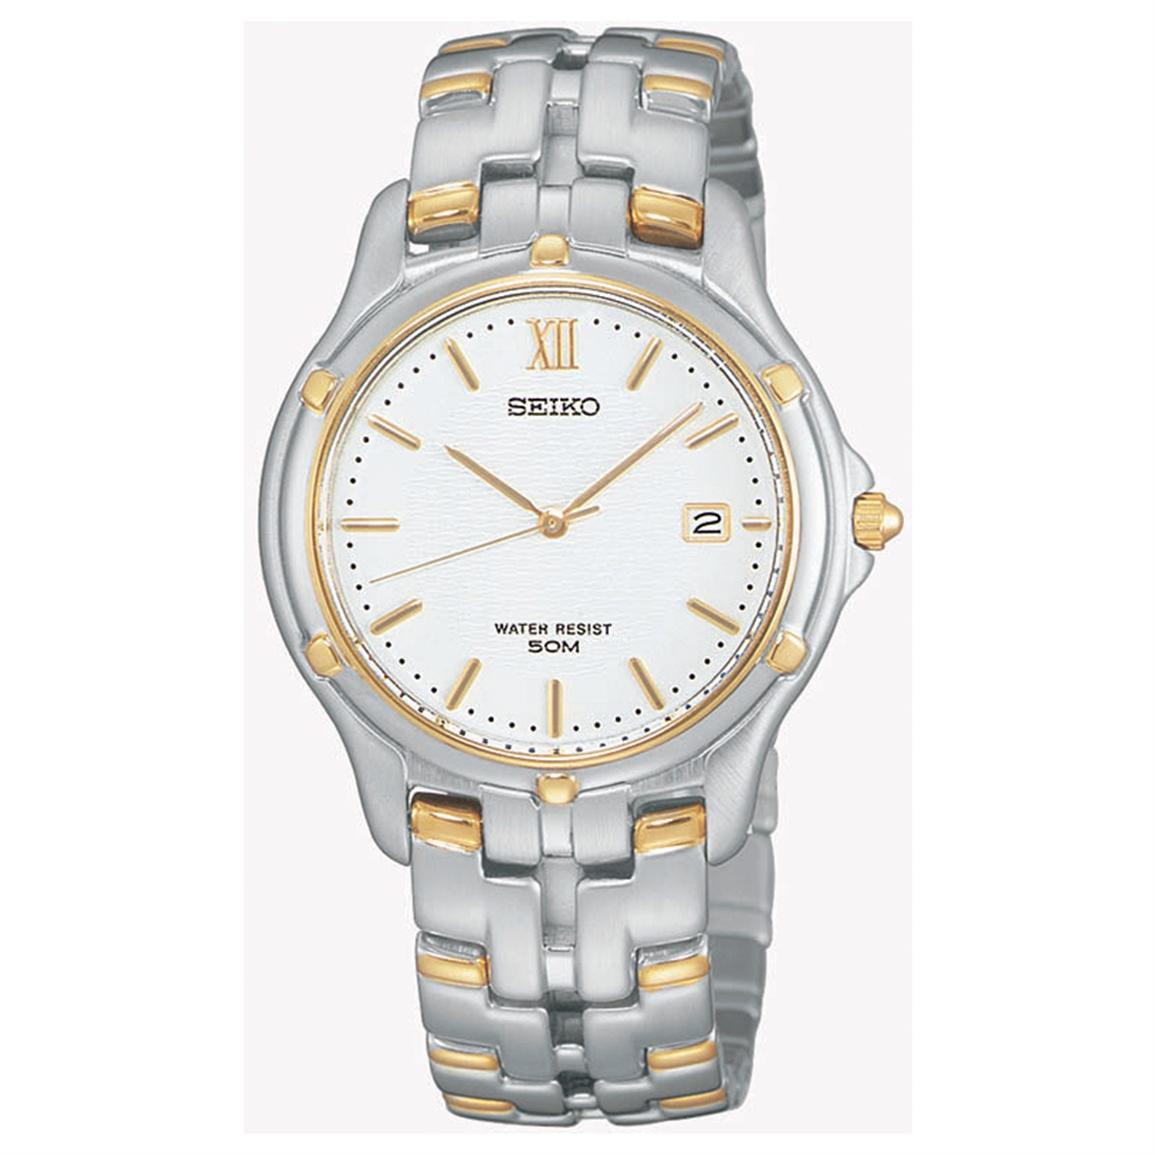 Seiko LeGrand Sport Men's Watch